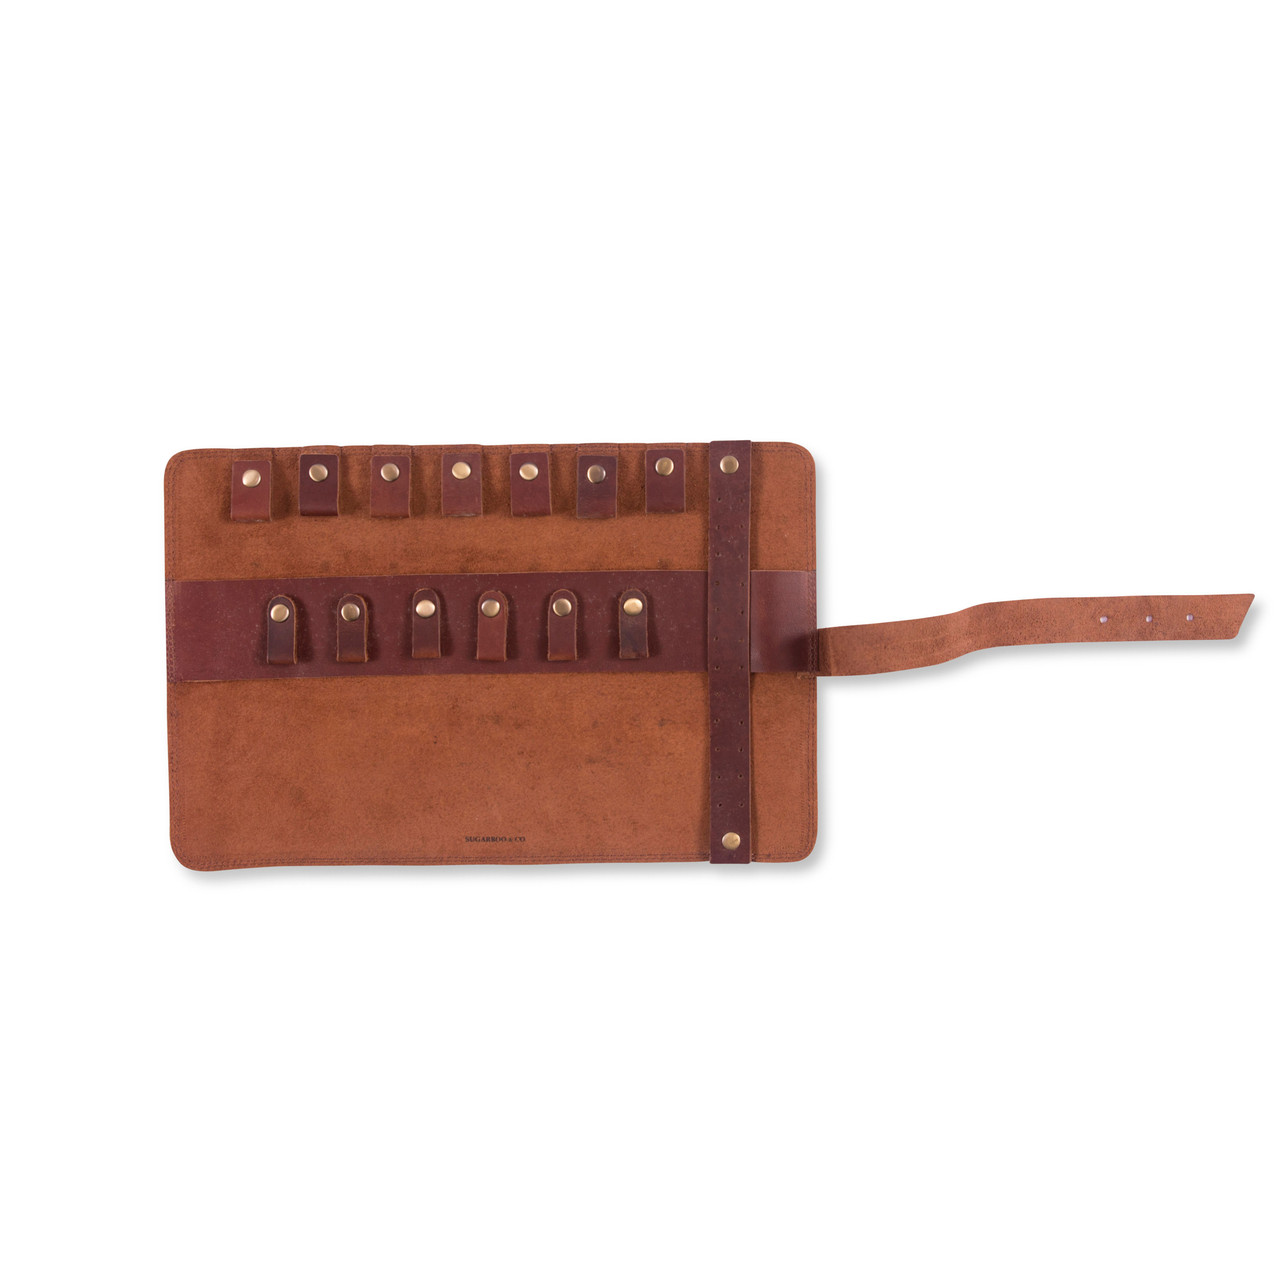 Leather Roll Up Pouch open